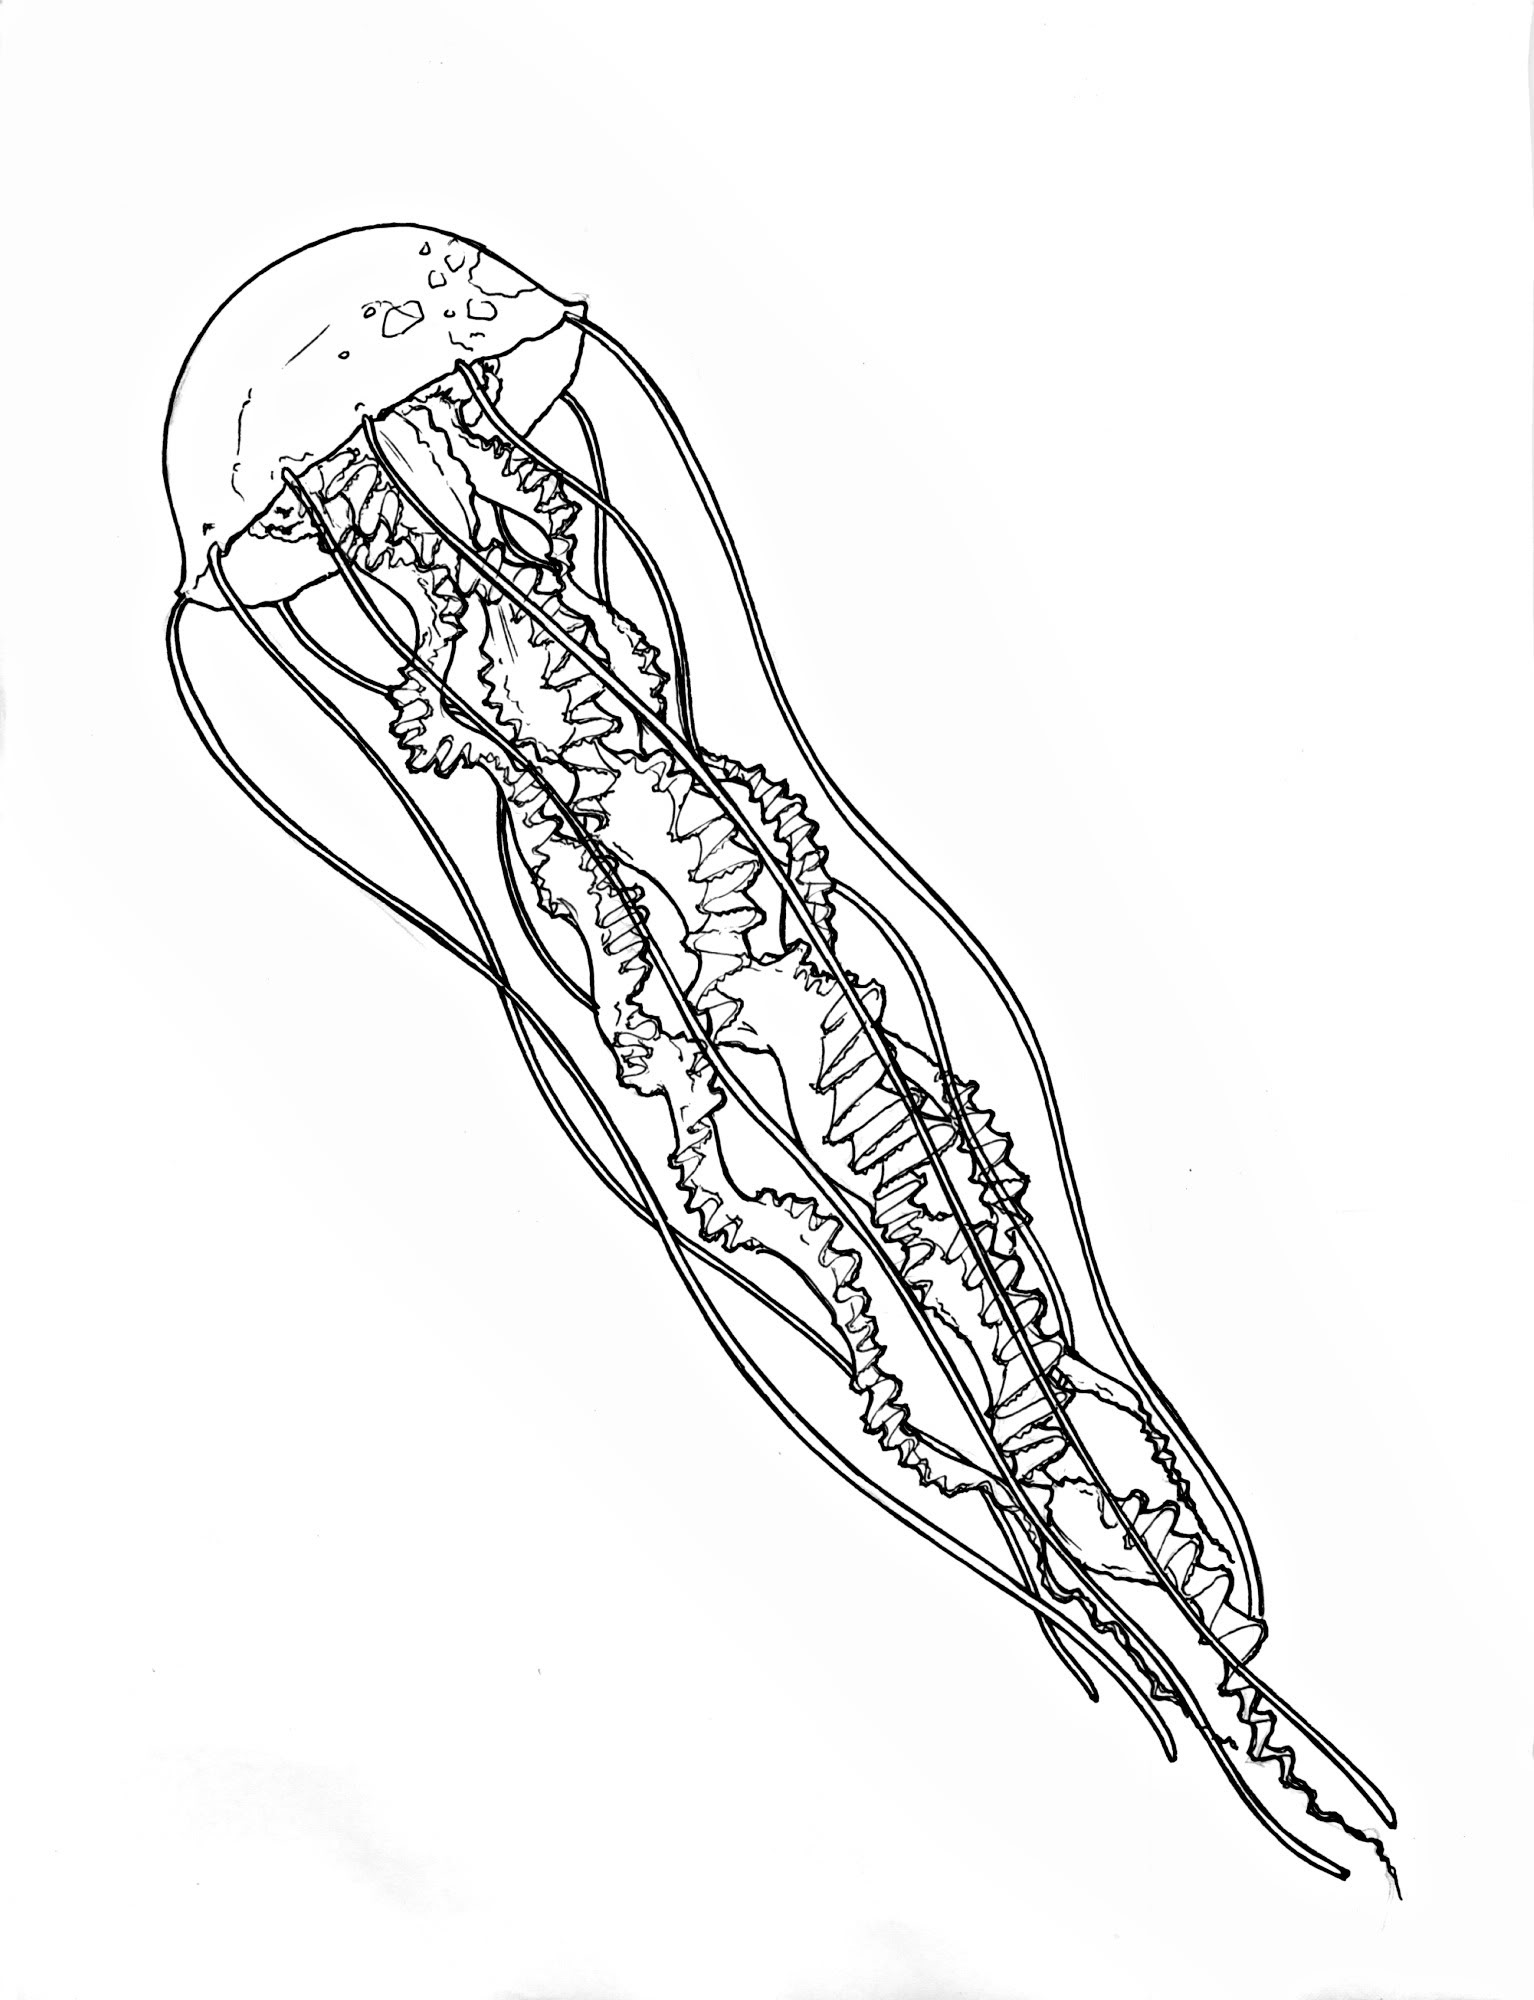 jelly fish drawings jellyfish clipart line drawing pictures on cliparts pub fish drawings jelly